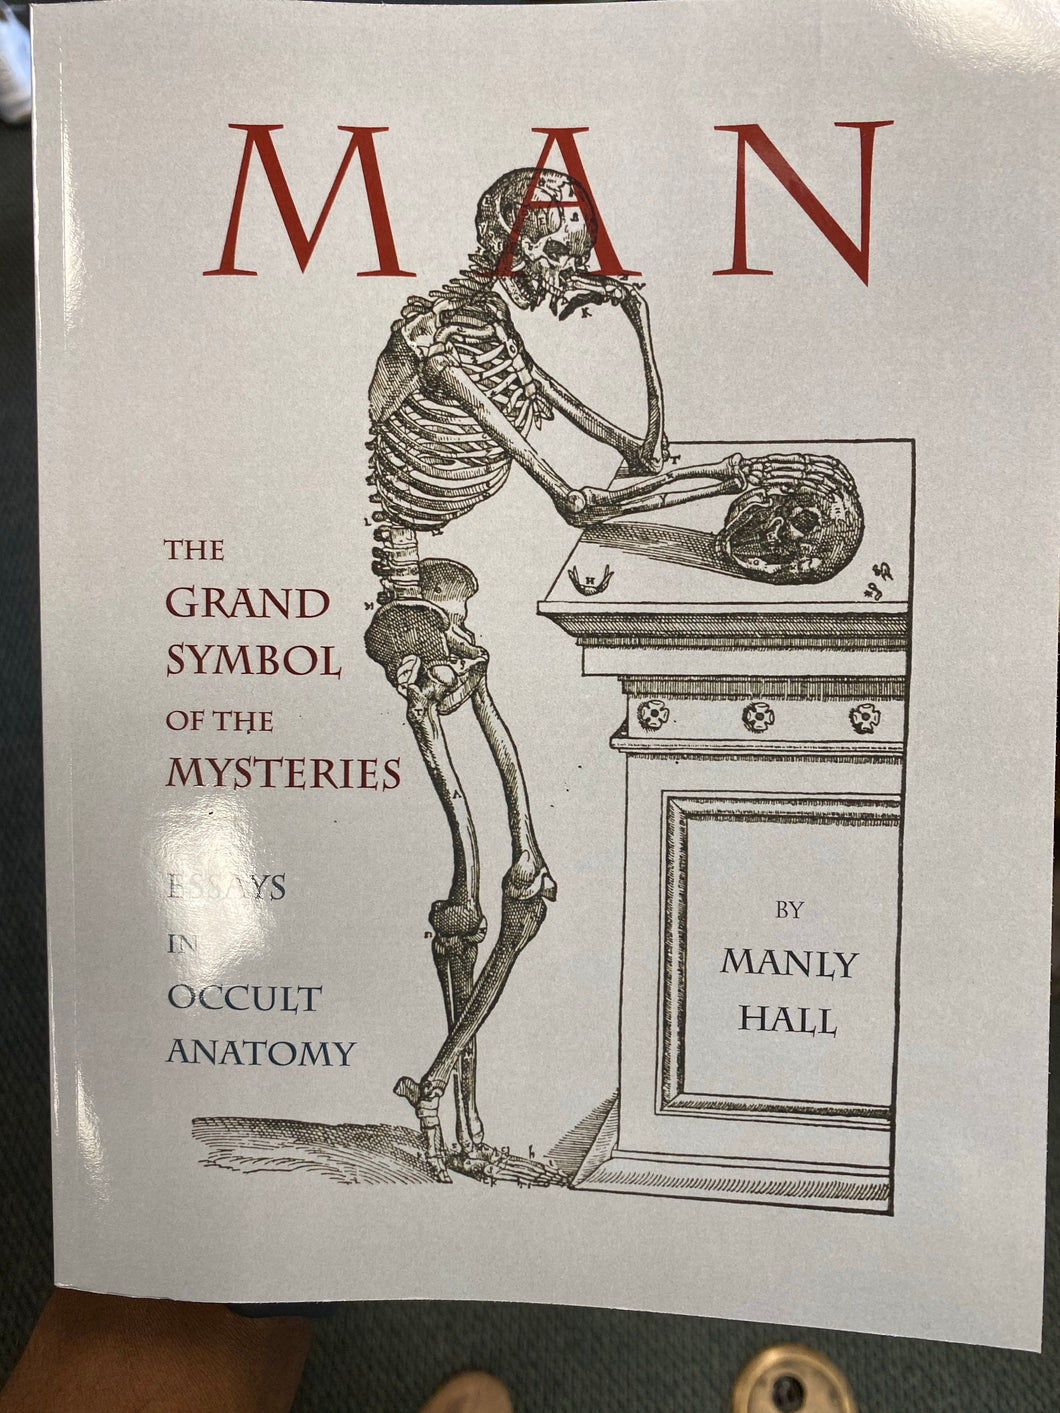 Man The Grand symbol of Mysteries essay in occult anatomy